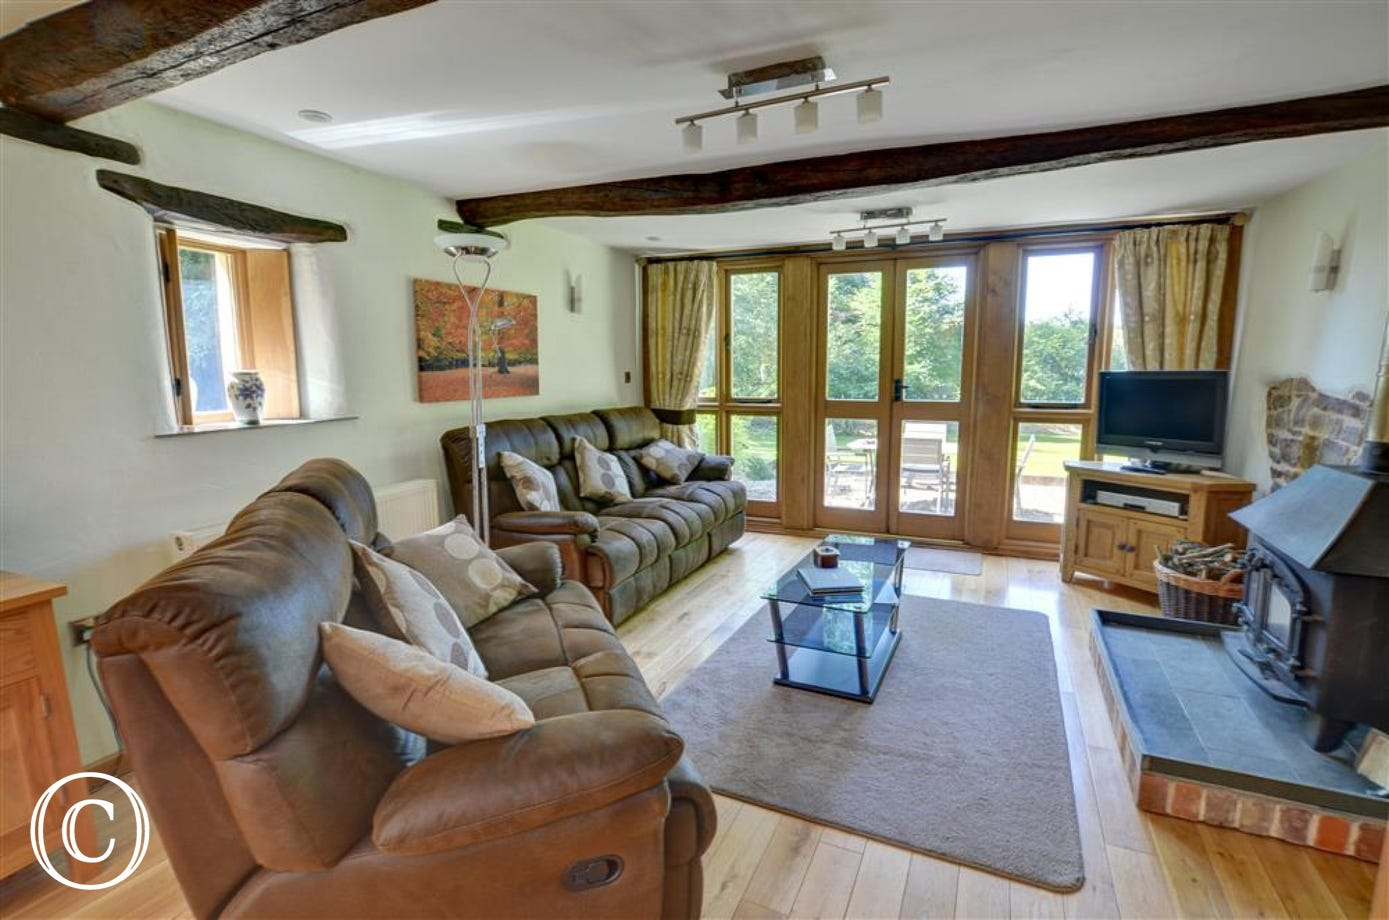 MEADOW - Sitting Room - View 4